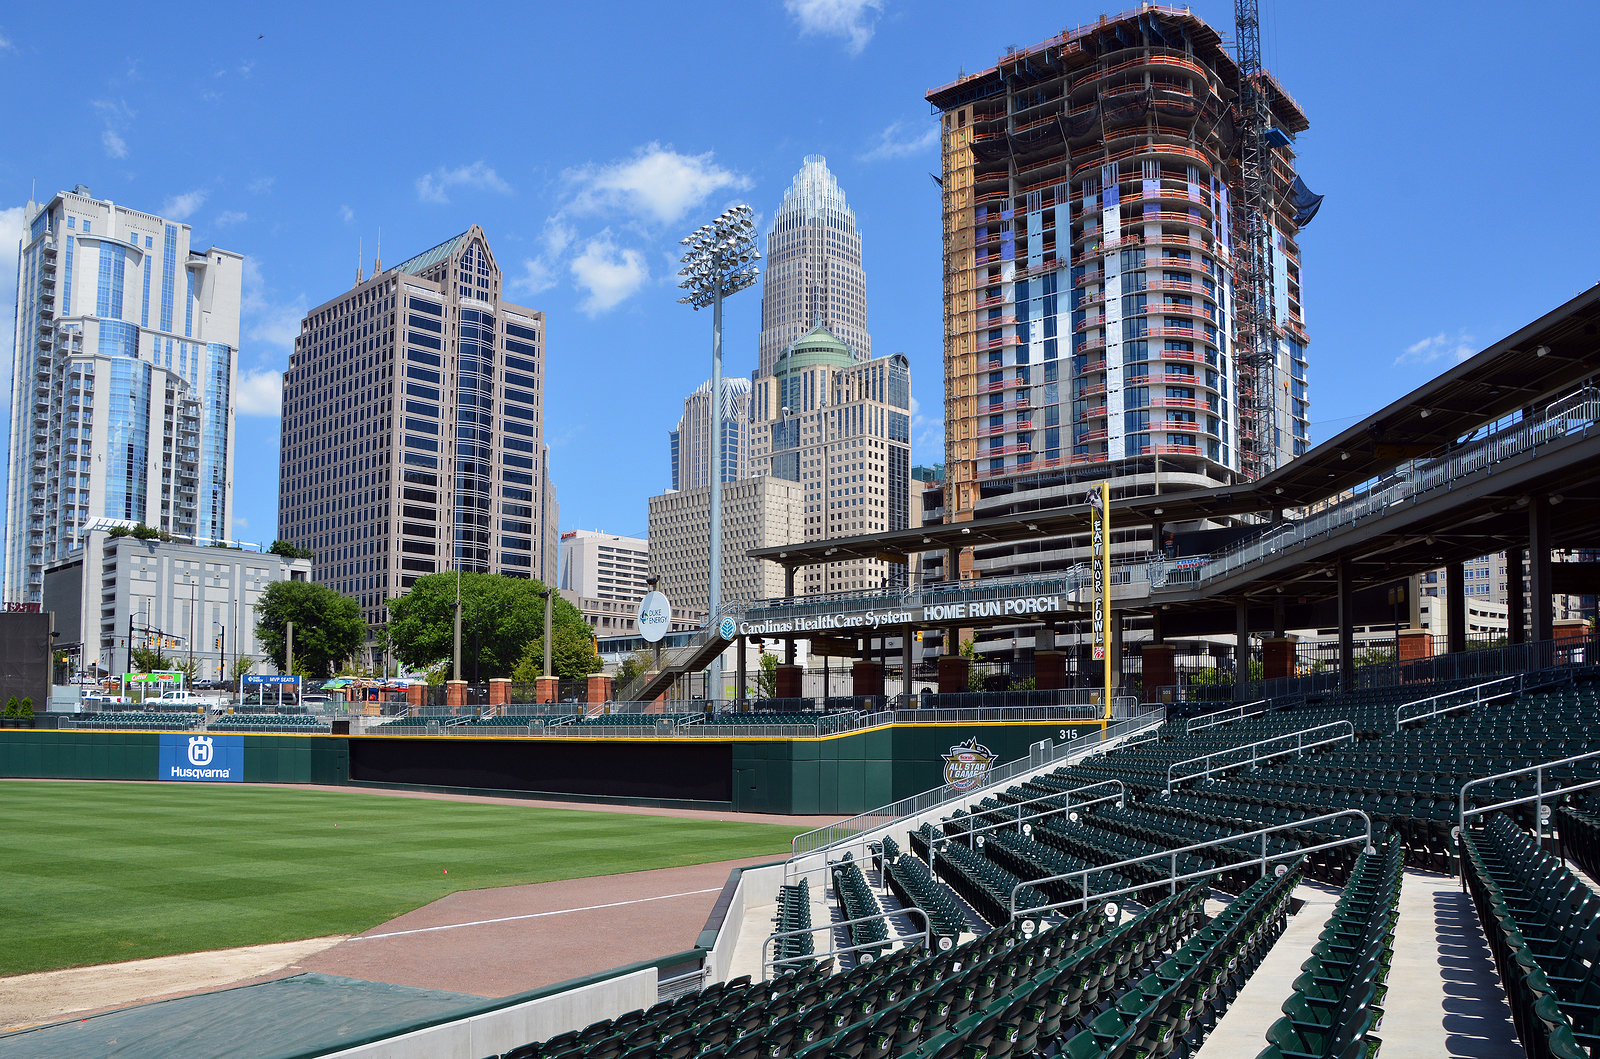 Charlotte Ranked No. 2 For Economic Growth Potential